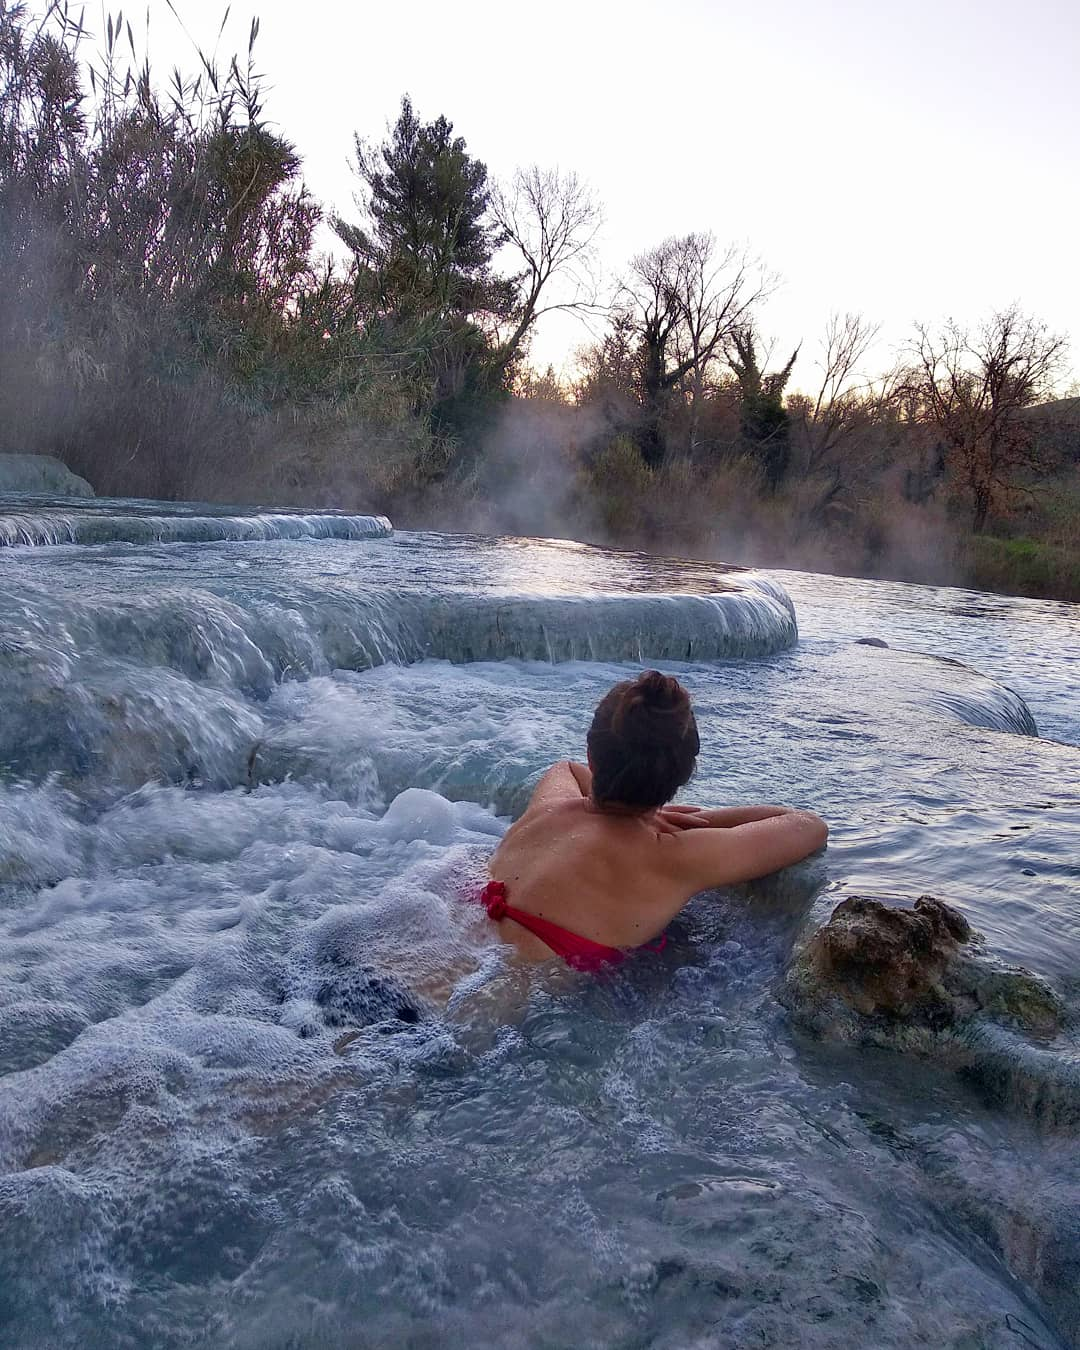 VISITING THE CASCATE DEL MULINO HOT SPRINGS IN ITALY